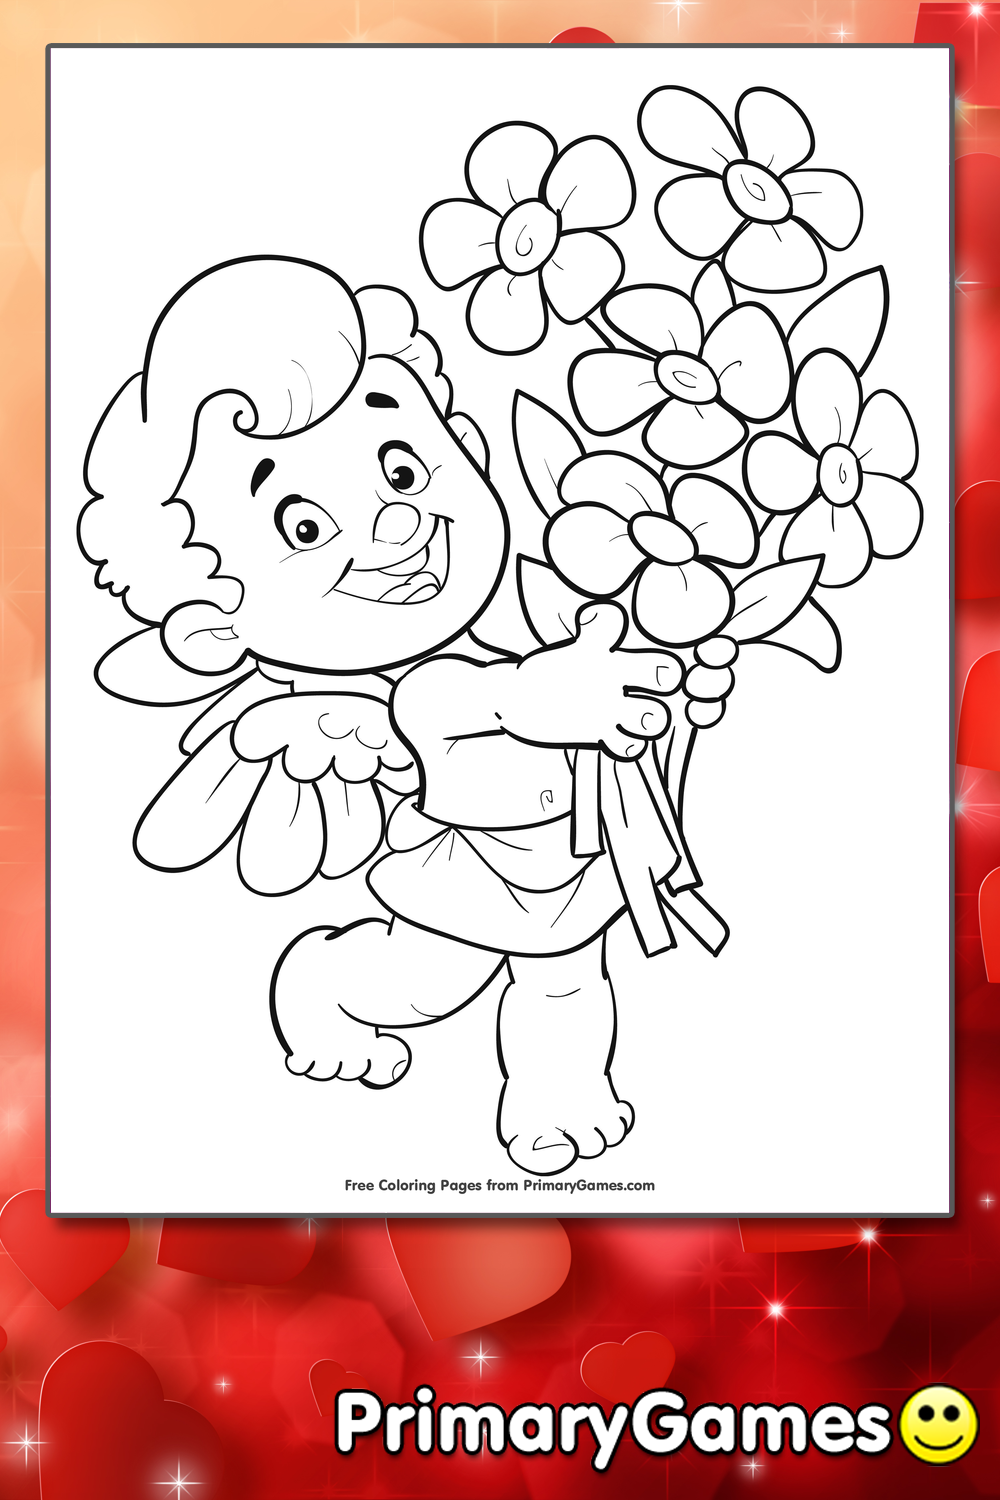 Valentines Coloring Pages Pdf : Cupid with flowers coloring page printable valentine s